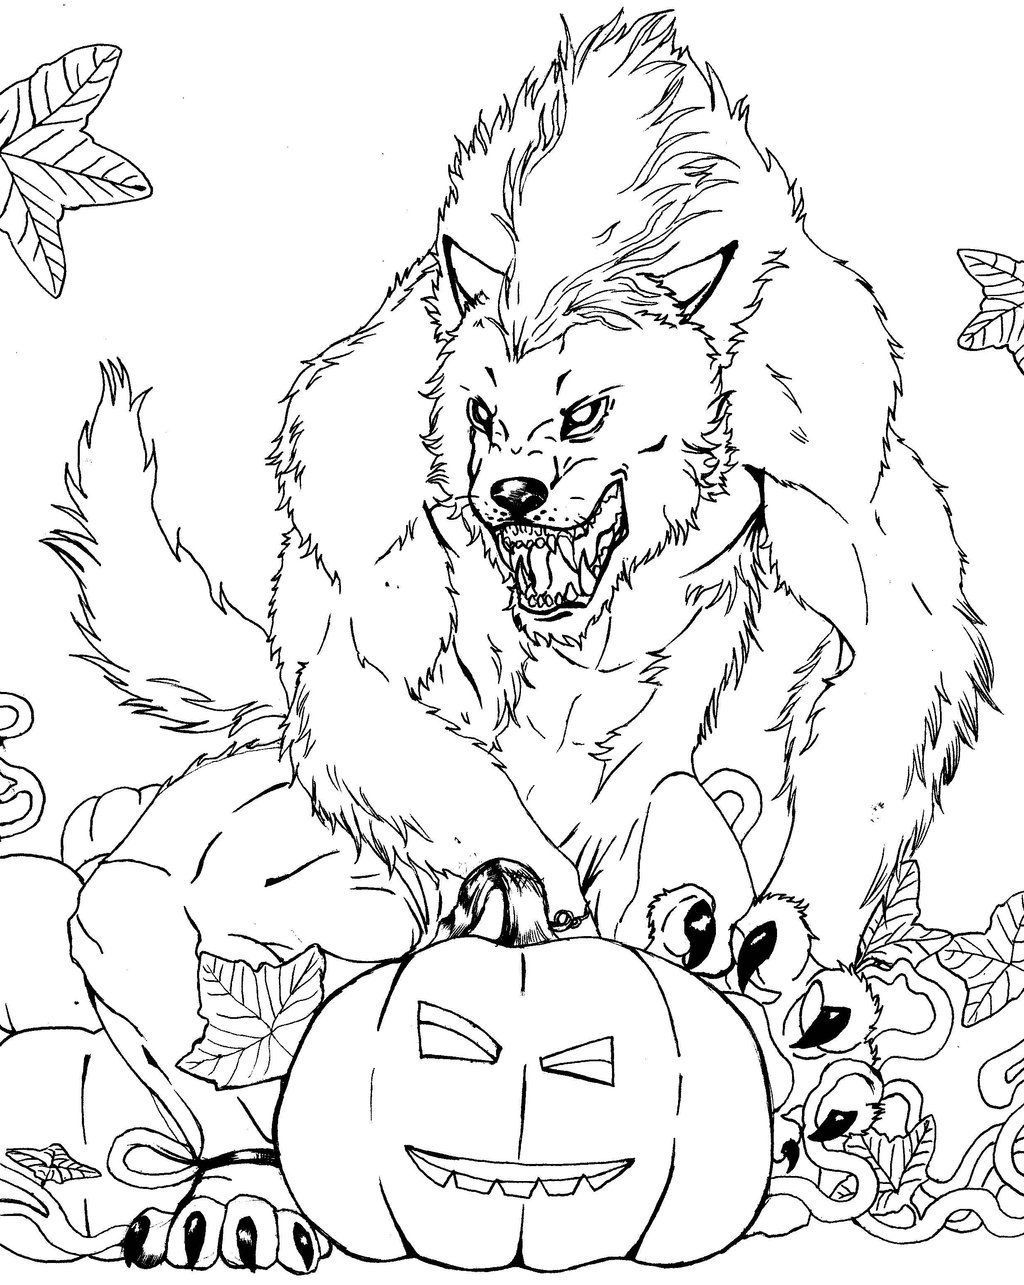 Free Werewolf Coloring Page Lineart Classic Movie Monsters Pinterest Werewolves Colori Monster Coloring Pages Halloween Coloring Pages Halloween Coloring Book